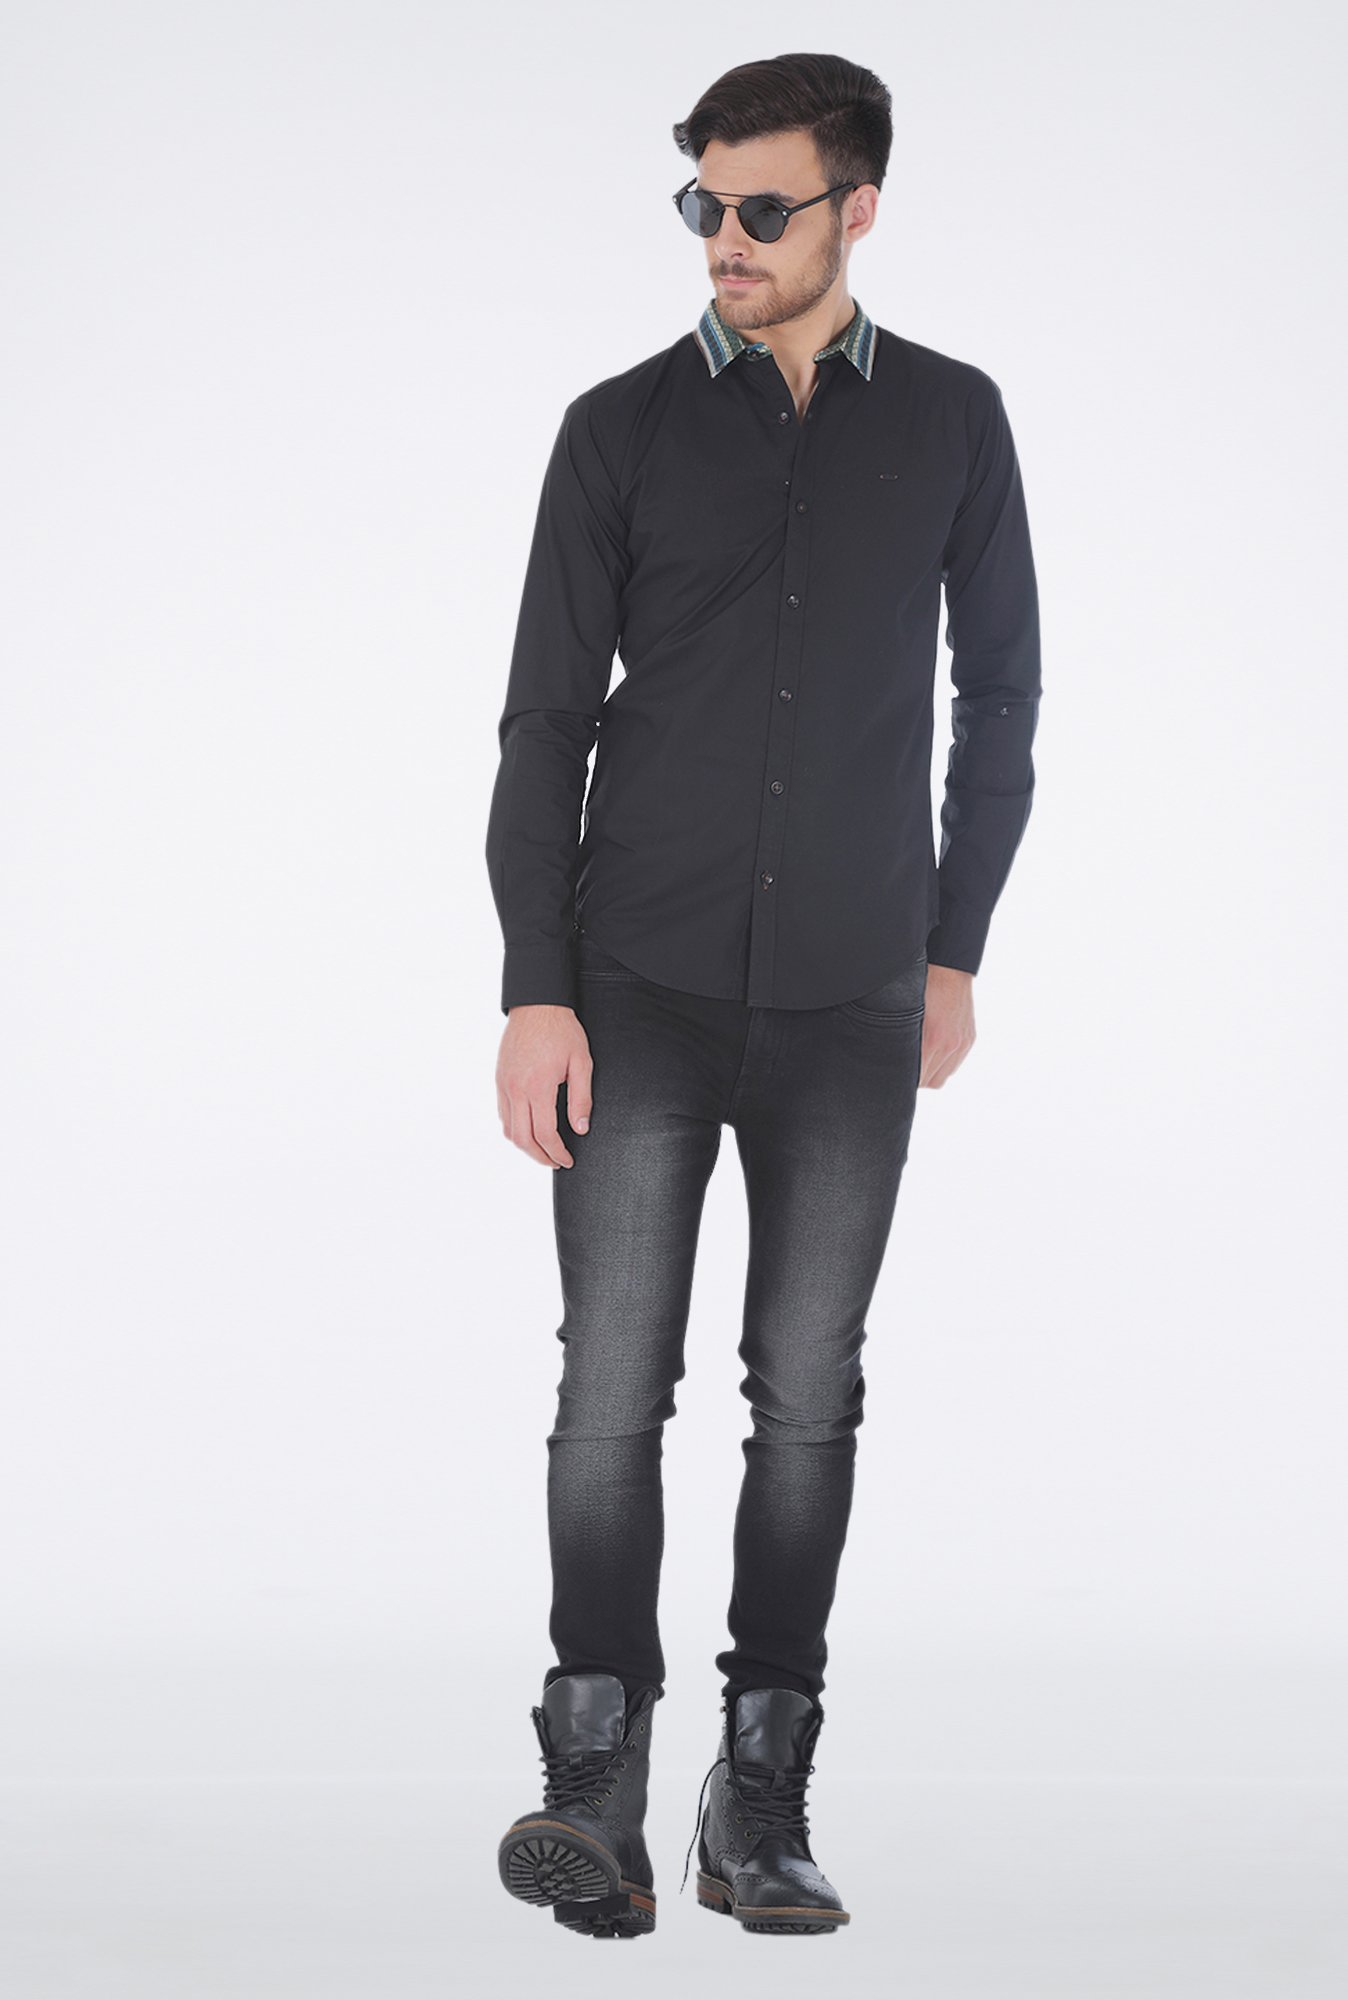 Basics Black Slim fit Casual Shirt